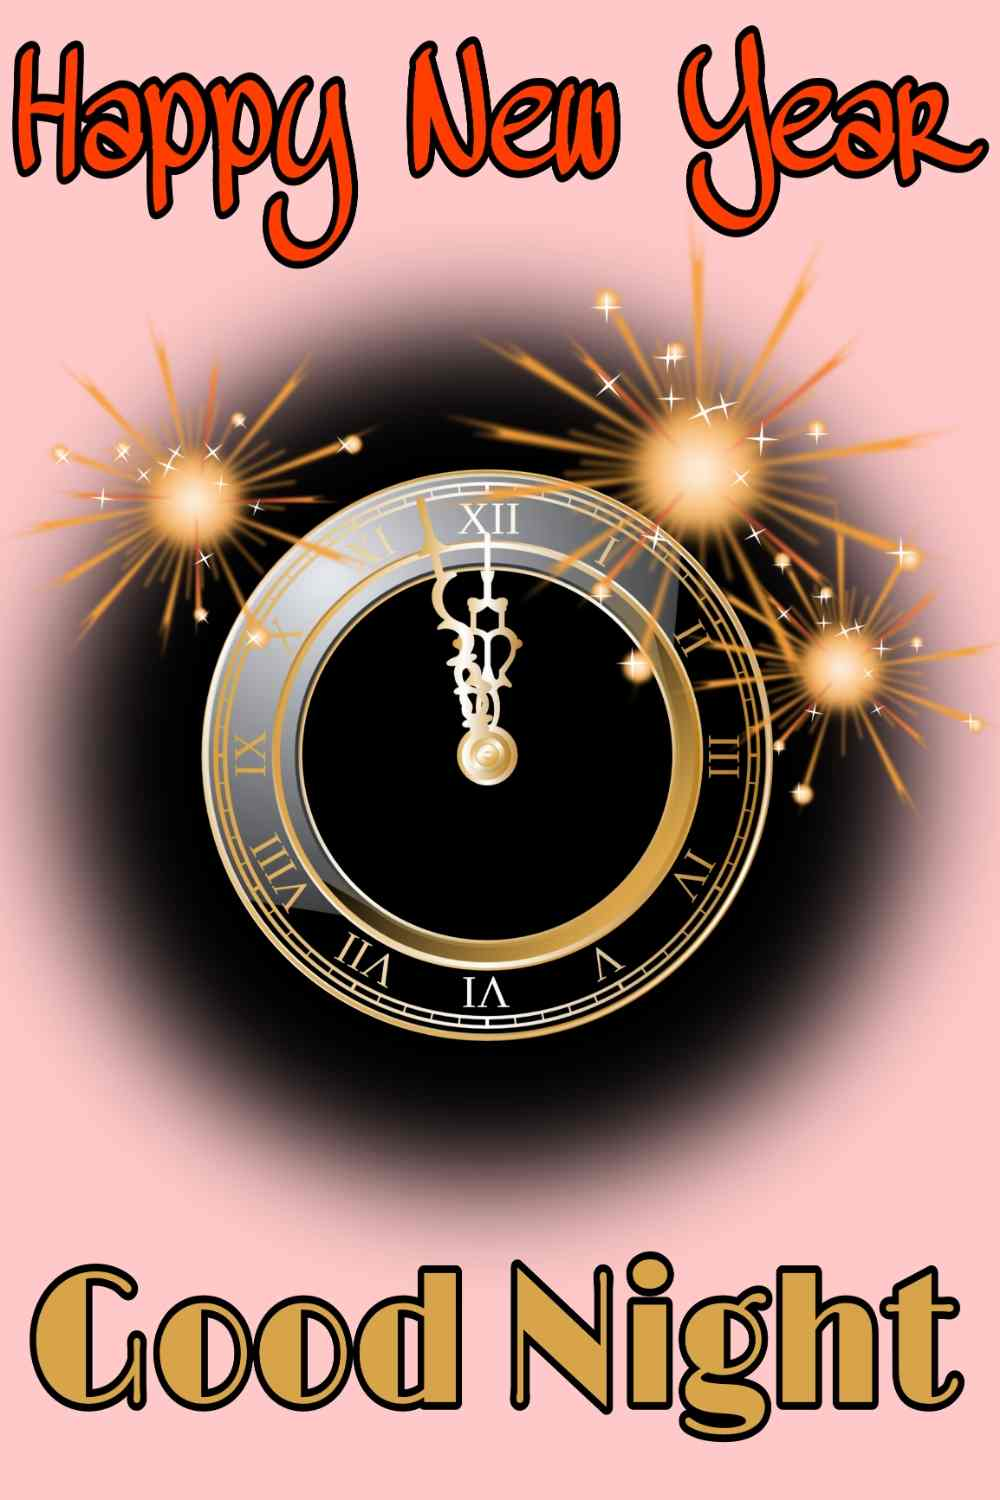 Good night Happy new year 2022 wishes images with clock and watch for Pinterest